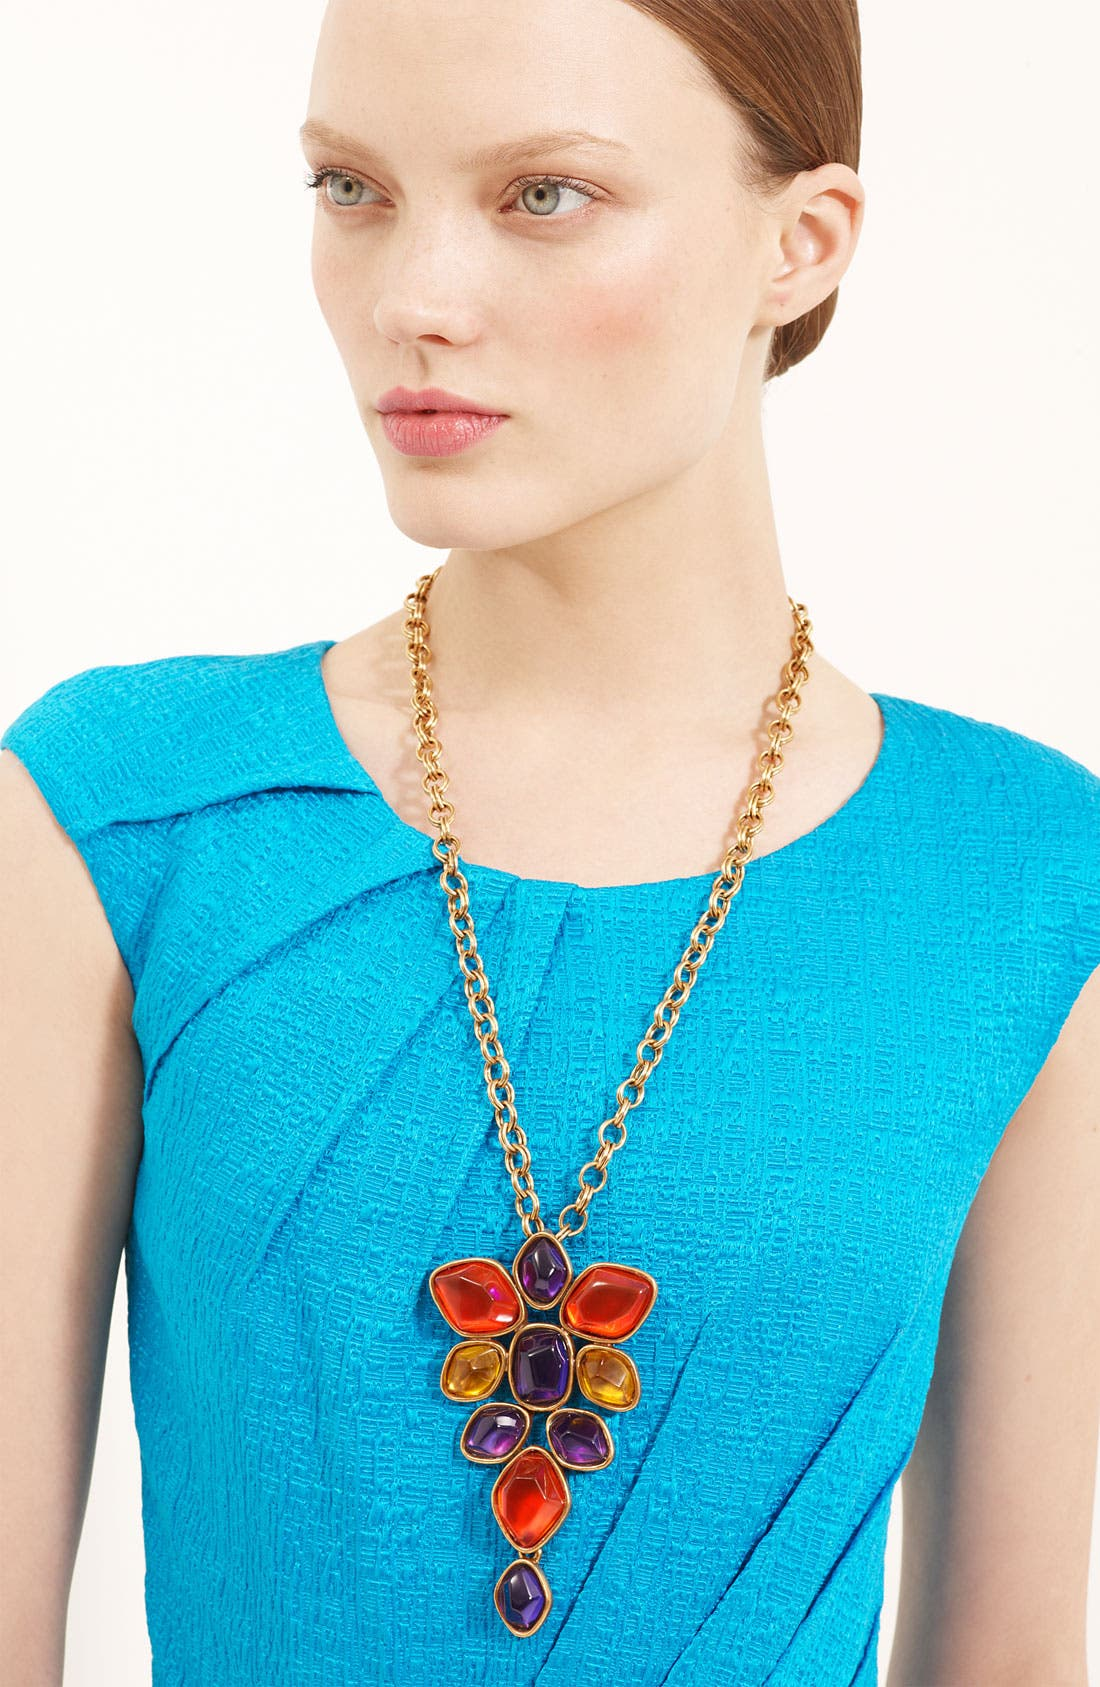 Main Image - Oscar de la Renta Large Faceted Cluster Brooch Necklace